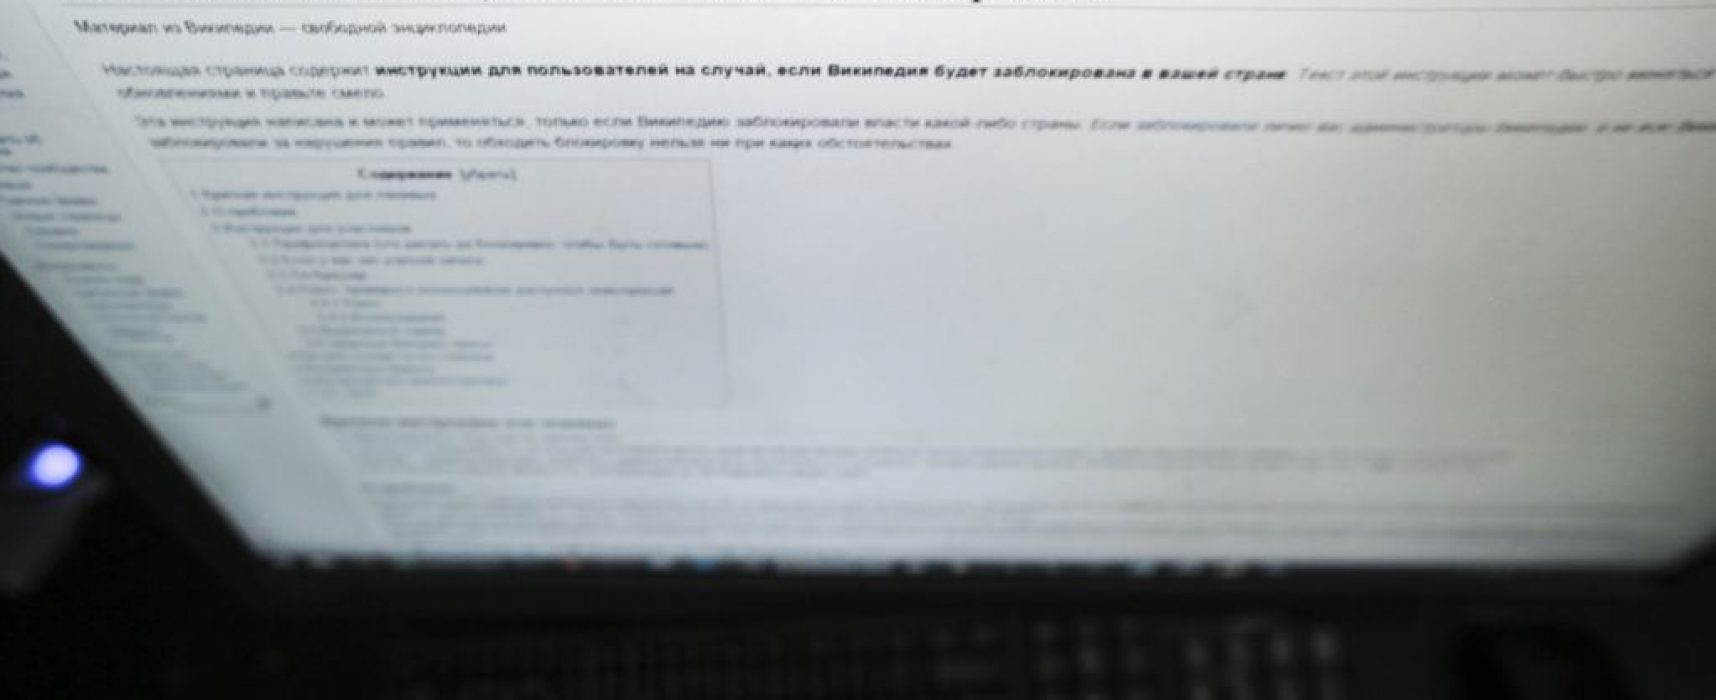 Law Tightening Internet Restrictions Comes Into Force In Russia